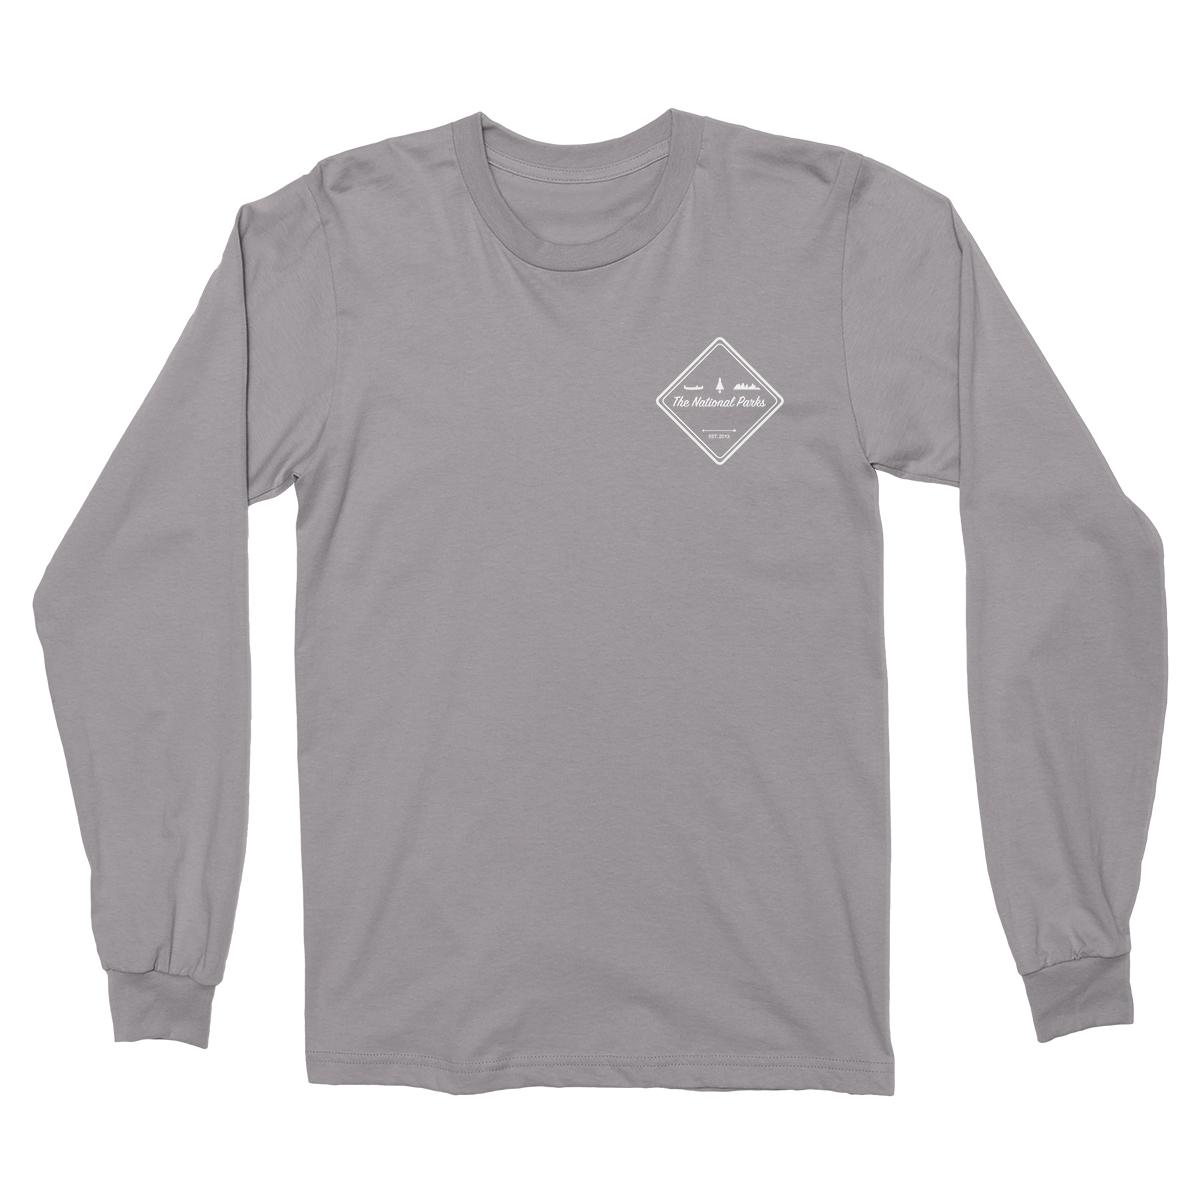 Icons - Long Sleeve T - The National Parks